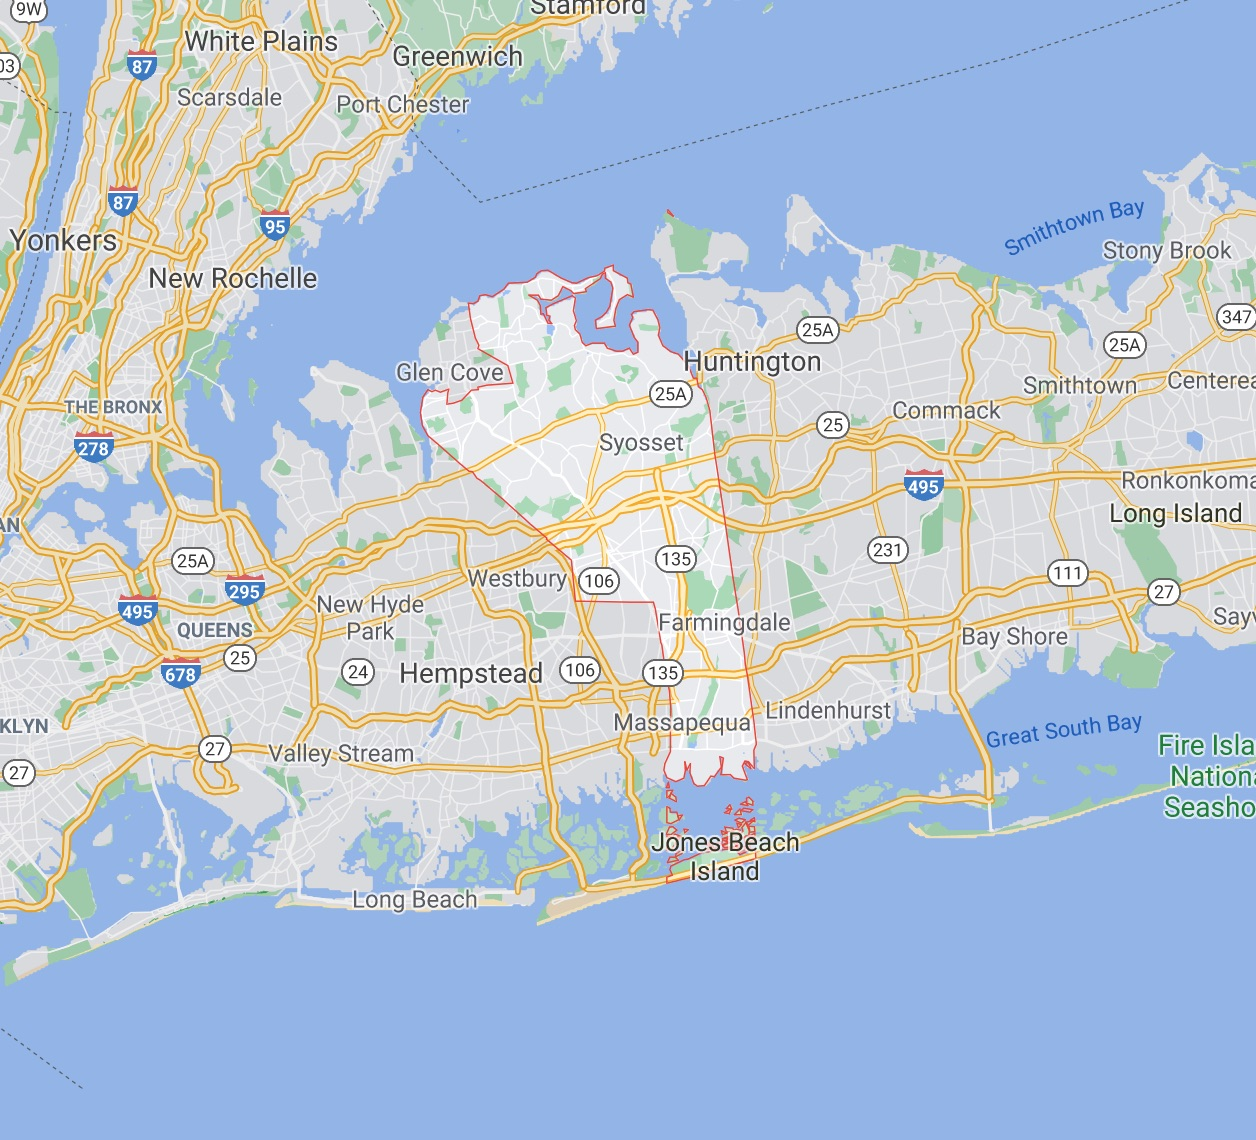 near, Town, of, Oyster, Bay, Town of Oyster Bay, NY, New York, long, Island, longisland, pet, store,